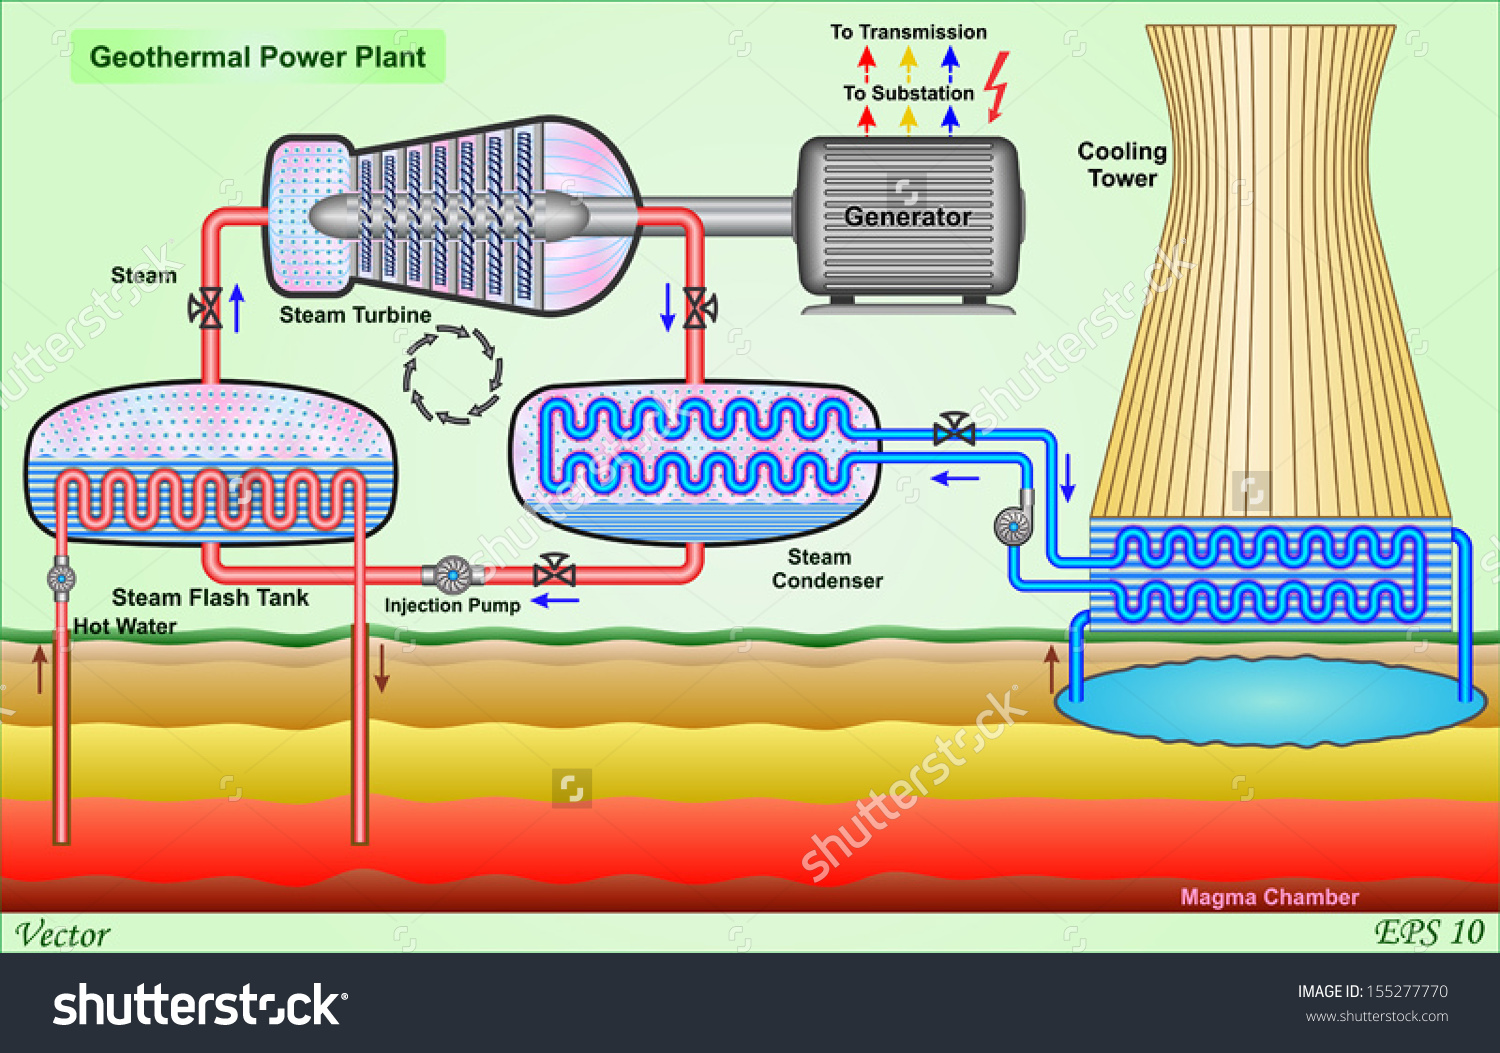 Geothermal Power Plant Stock Vector 155277770.